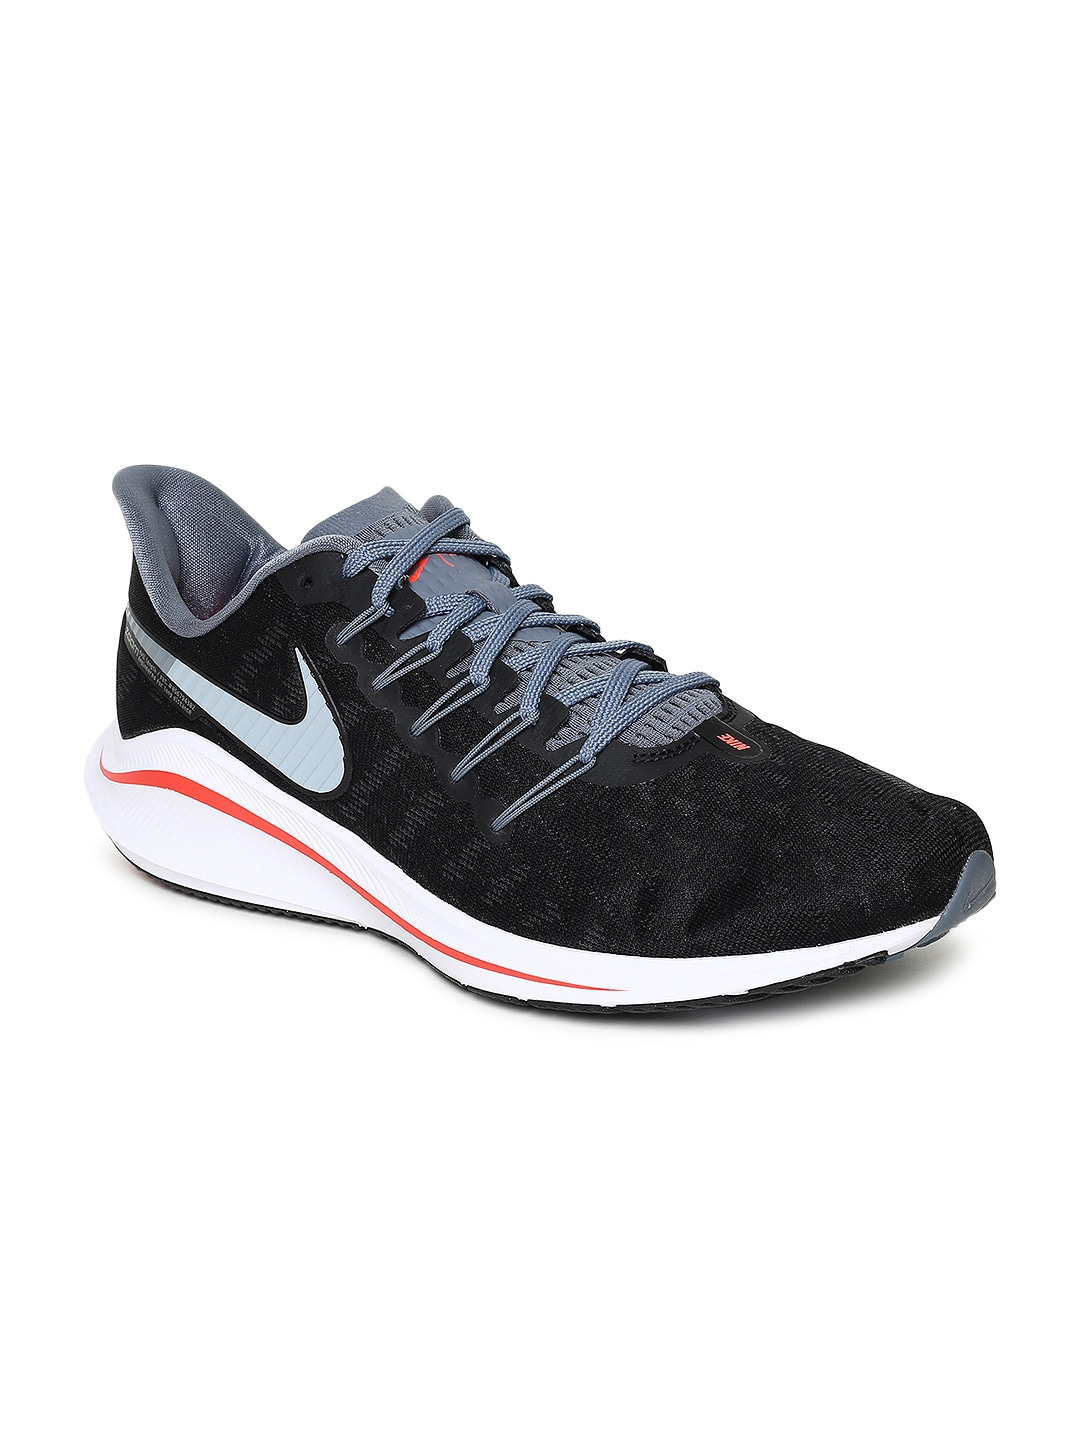 6606fa99f Nike Sport Shoe - Buy Nike Sport Shoes At Best Price Online